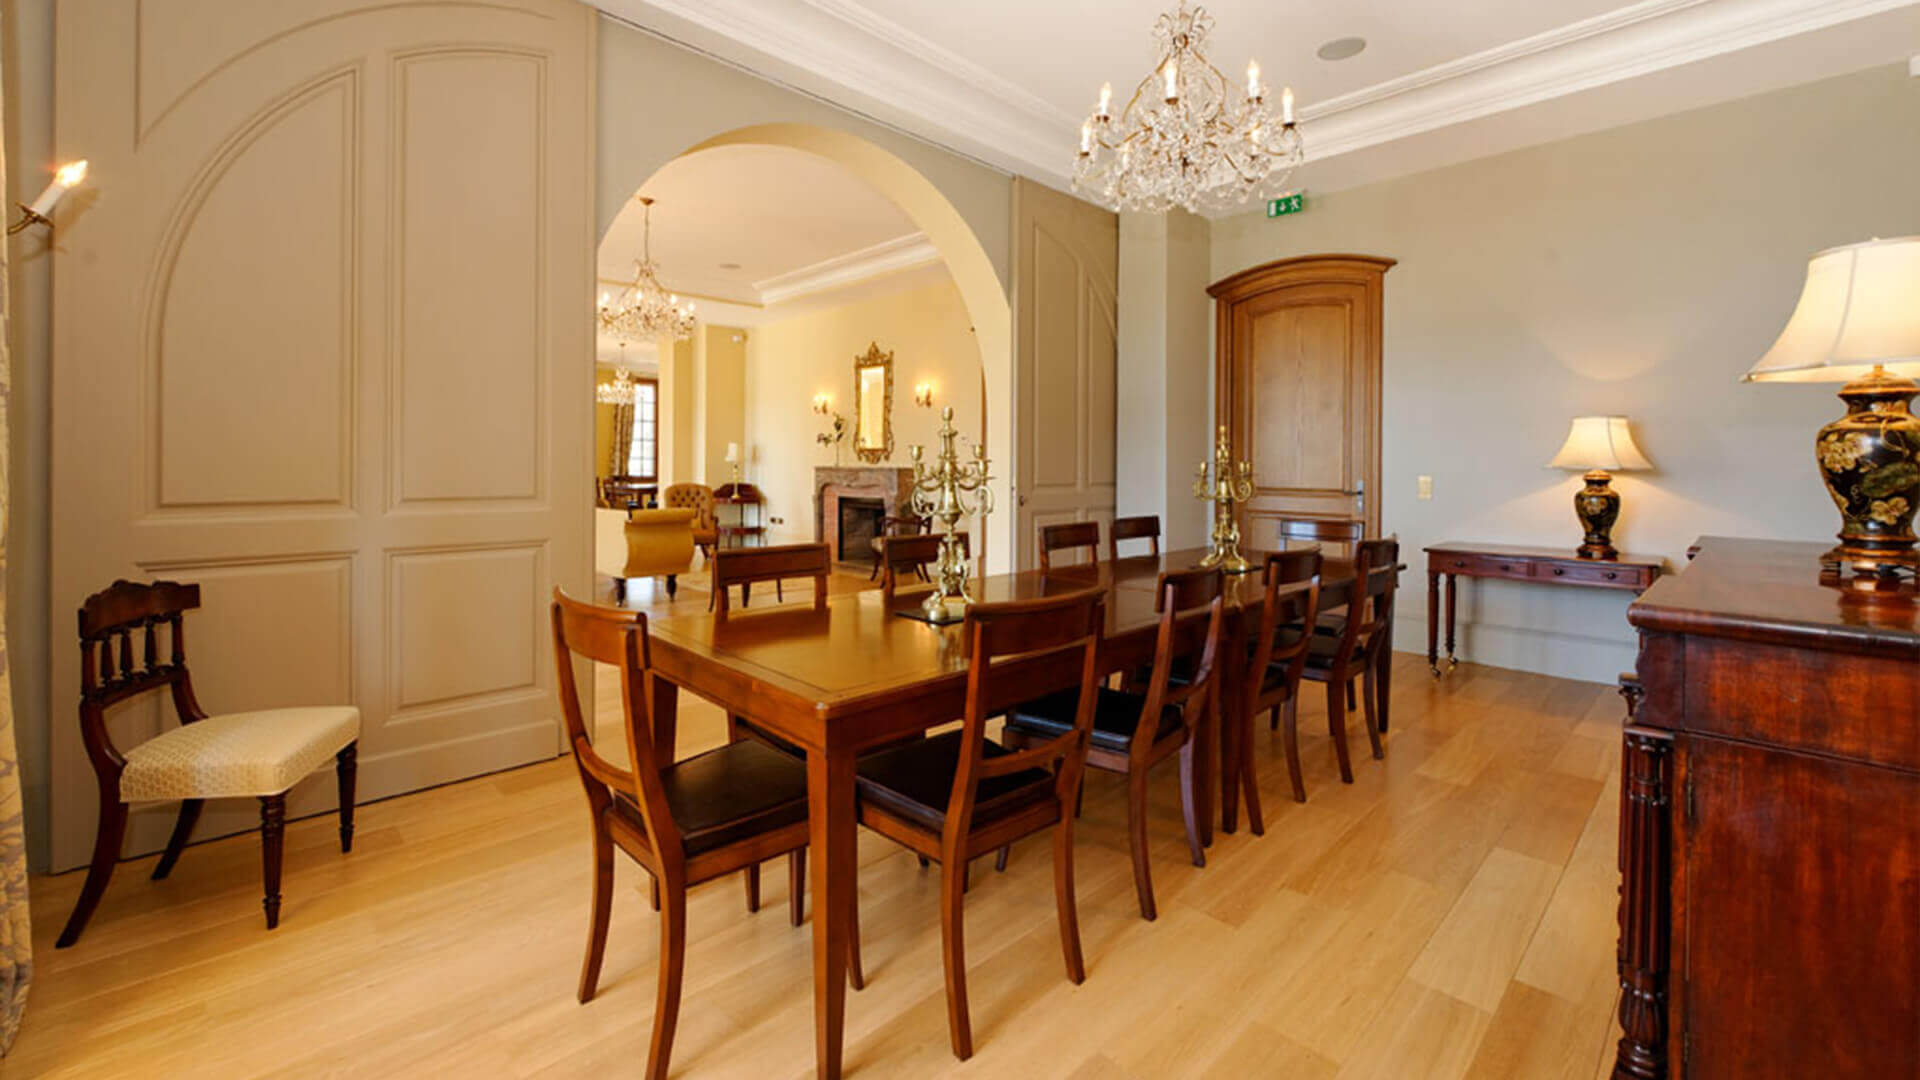 Large luxury Chateau dining room with chandelier